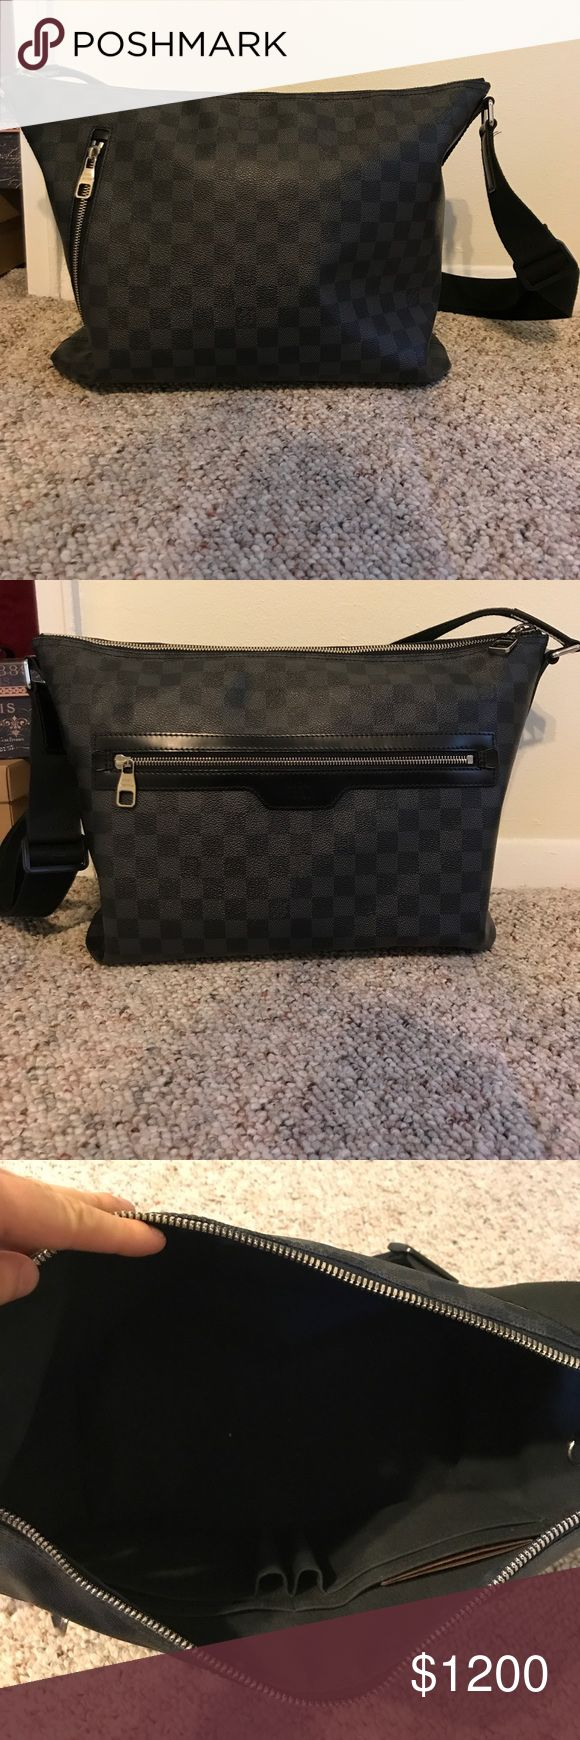 Authentic Louis Vuitton Damier Graphite Mick MM Authentic Louis Vuitton. Used, but still in excellent condition.  Comes with dust bag.  Price is firm. Louis Vuitton Bags Messenger Bags